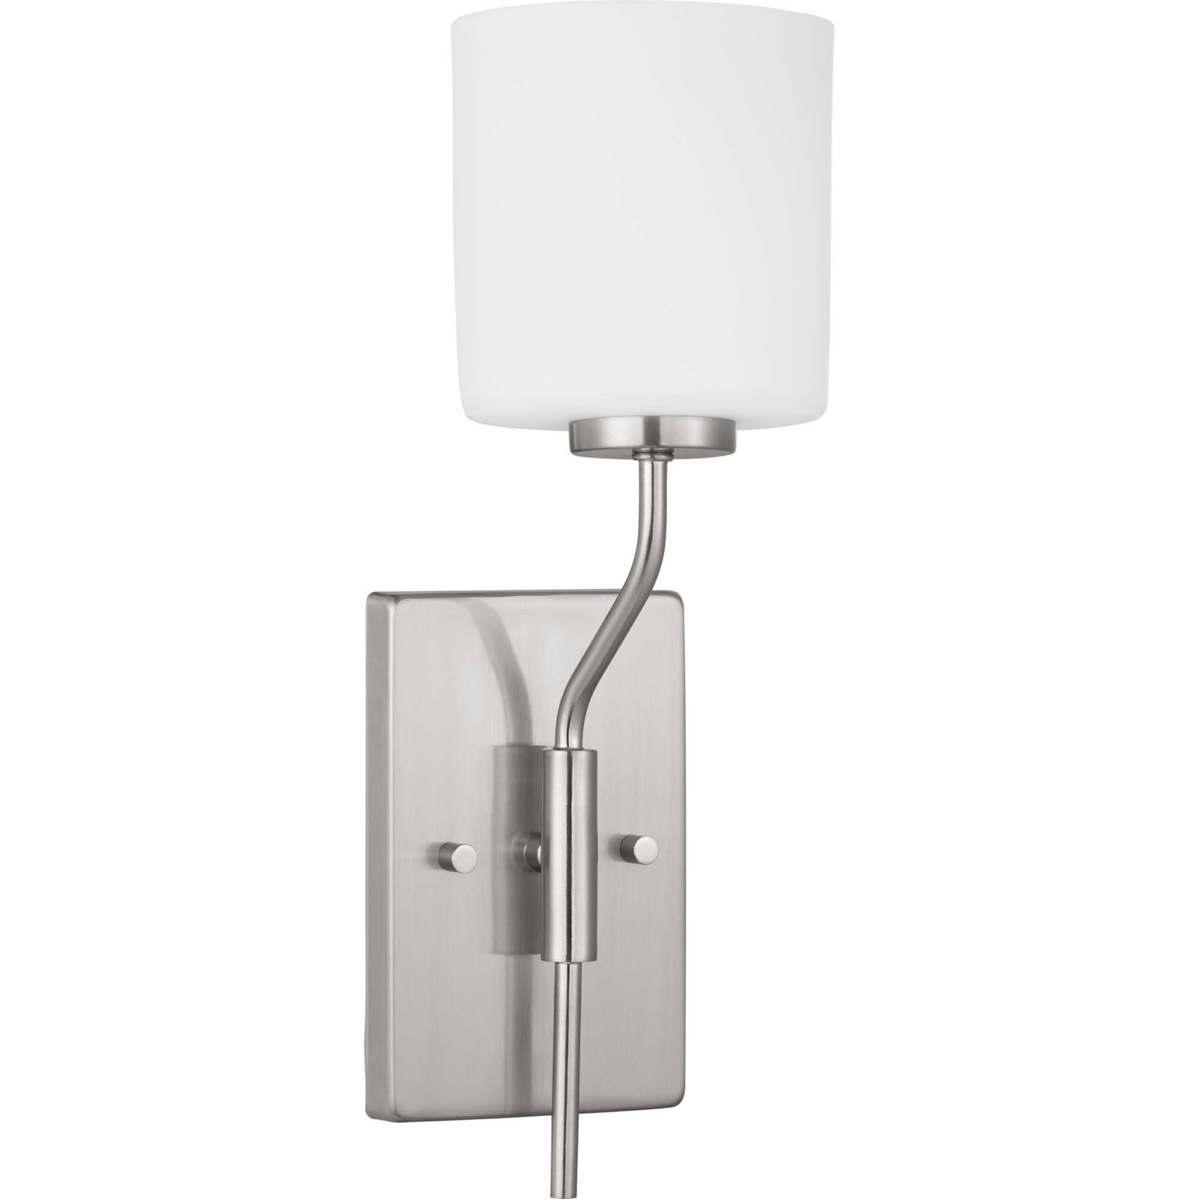 Details About Progress Lighting P300222 009 Tobin Wall Sconce Brushed Nickel